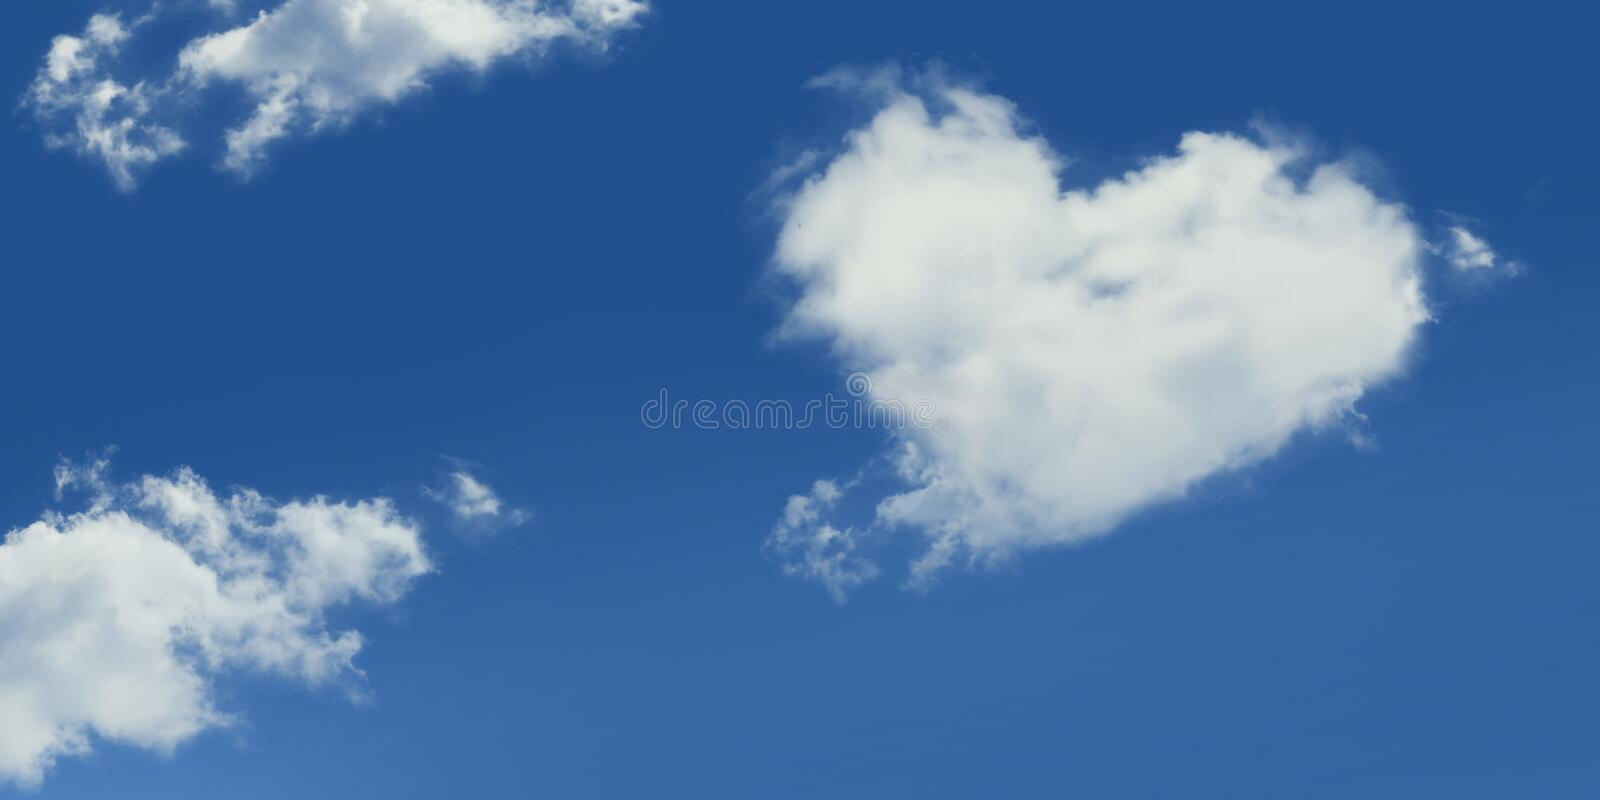 A Cloud On A Blue Sky In The Shape Of A Heart Among Other White